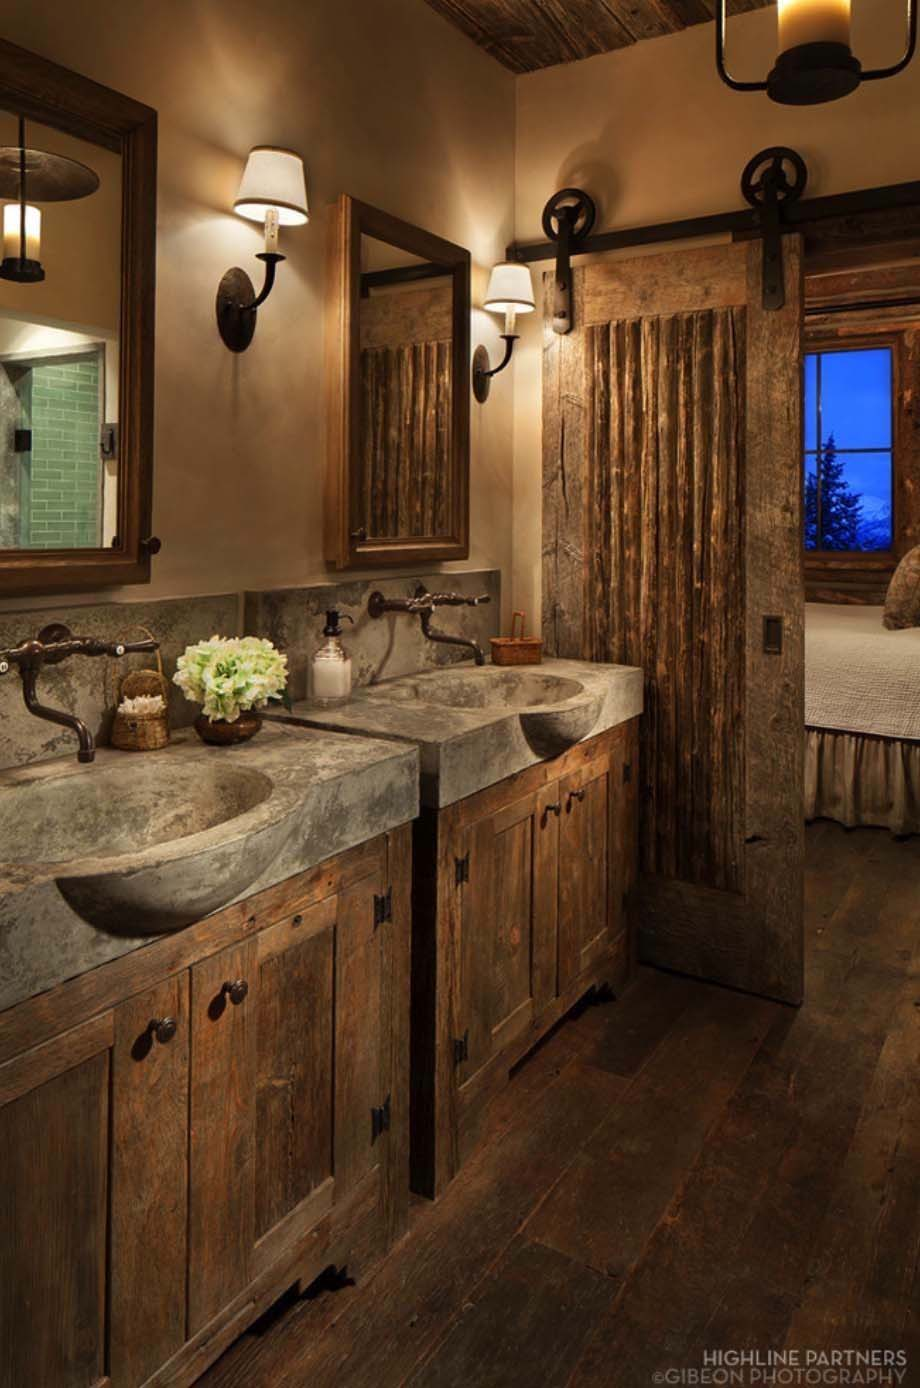 Rustic Bathrooms Designs Delectable 31 Best Rustic Bathroom Design And Decor Ideas For 2017 2017